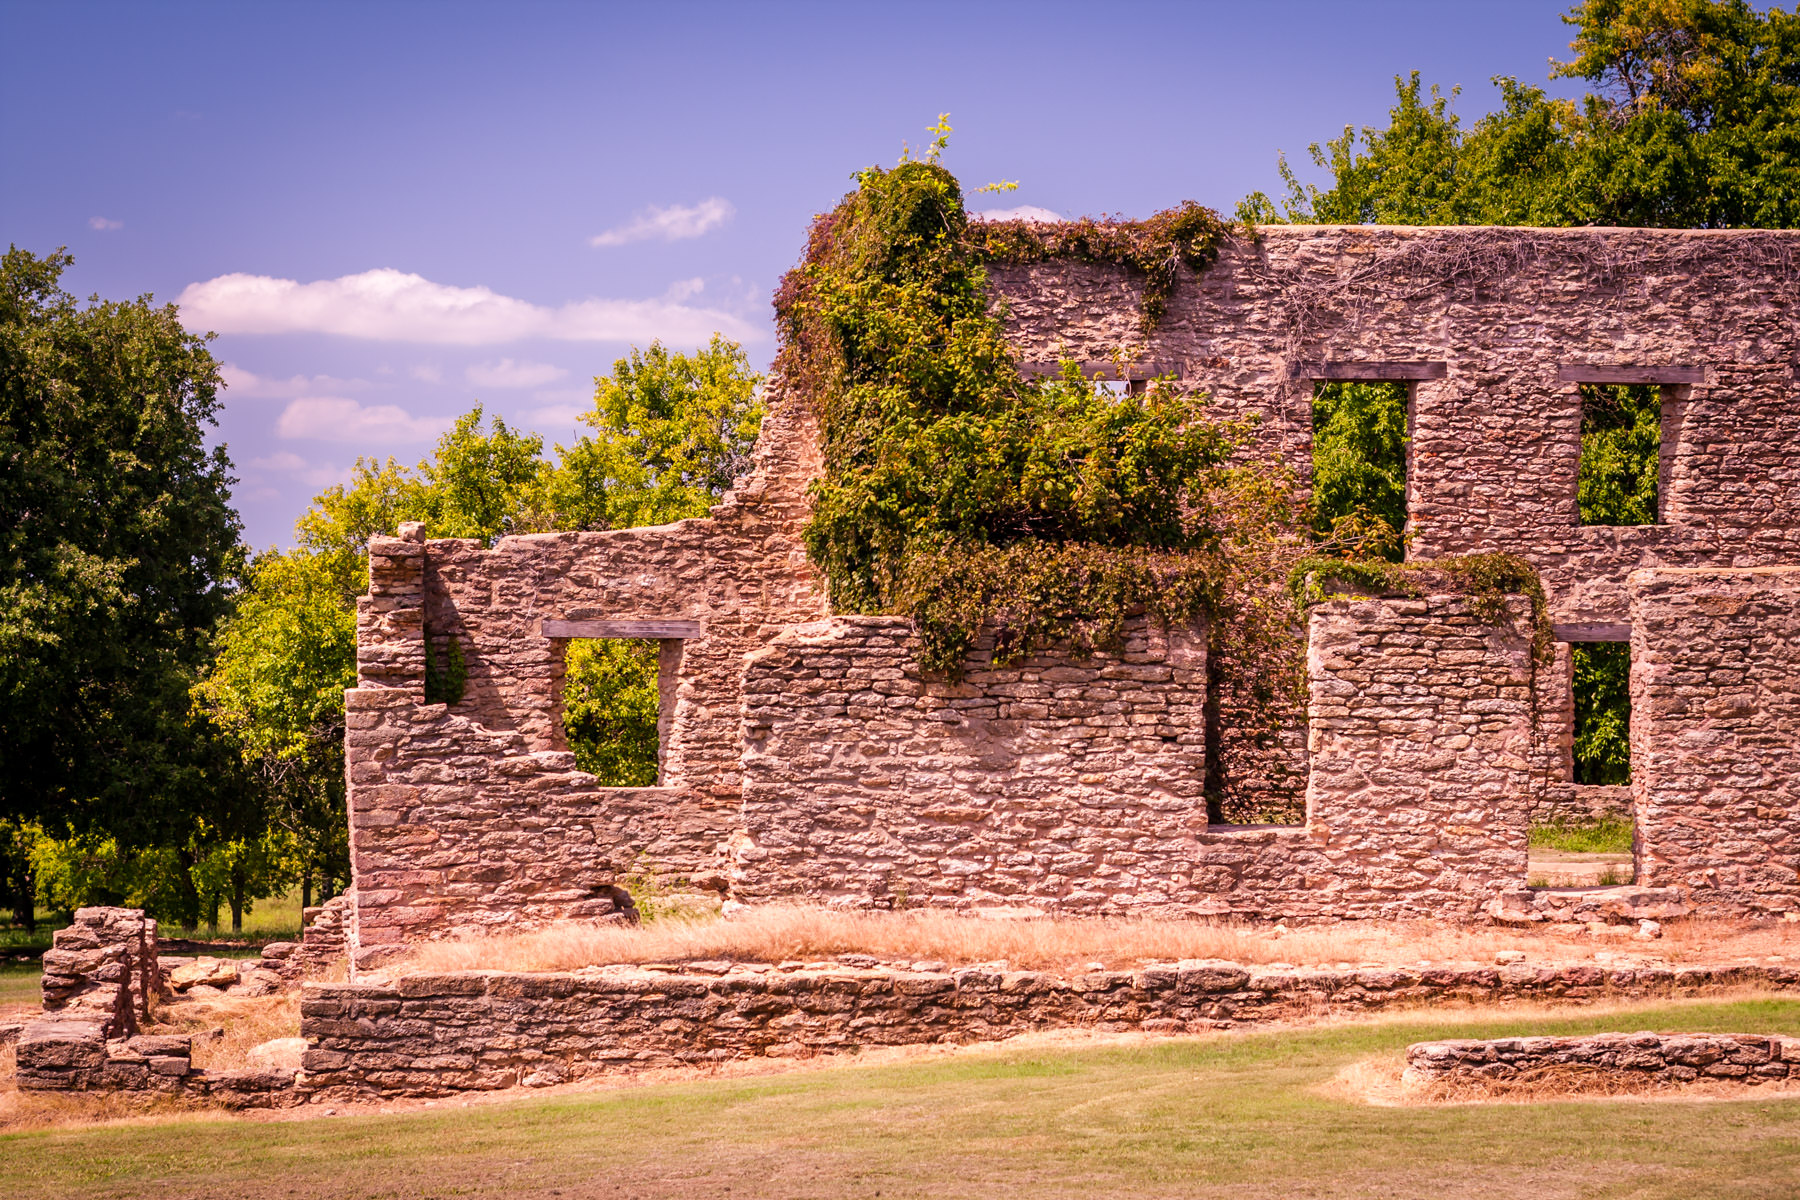 A crumbled stone building at Fort Washita, Oklahoma.